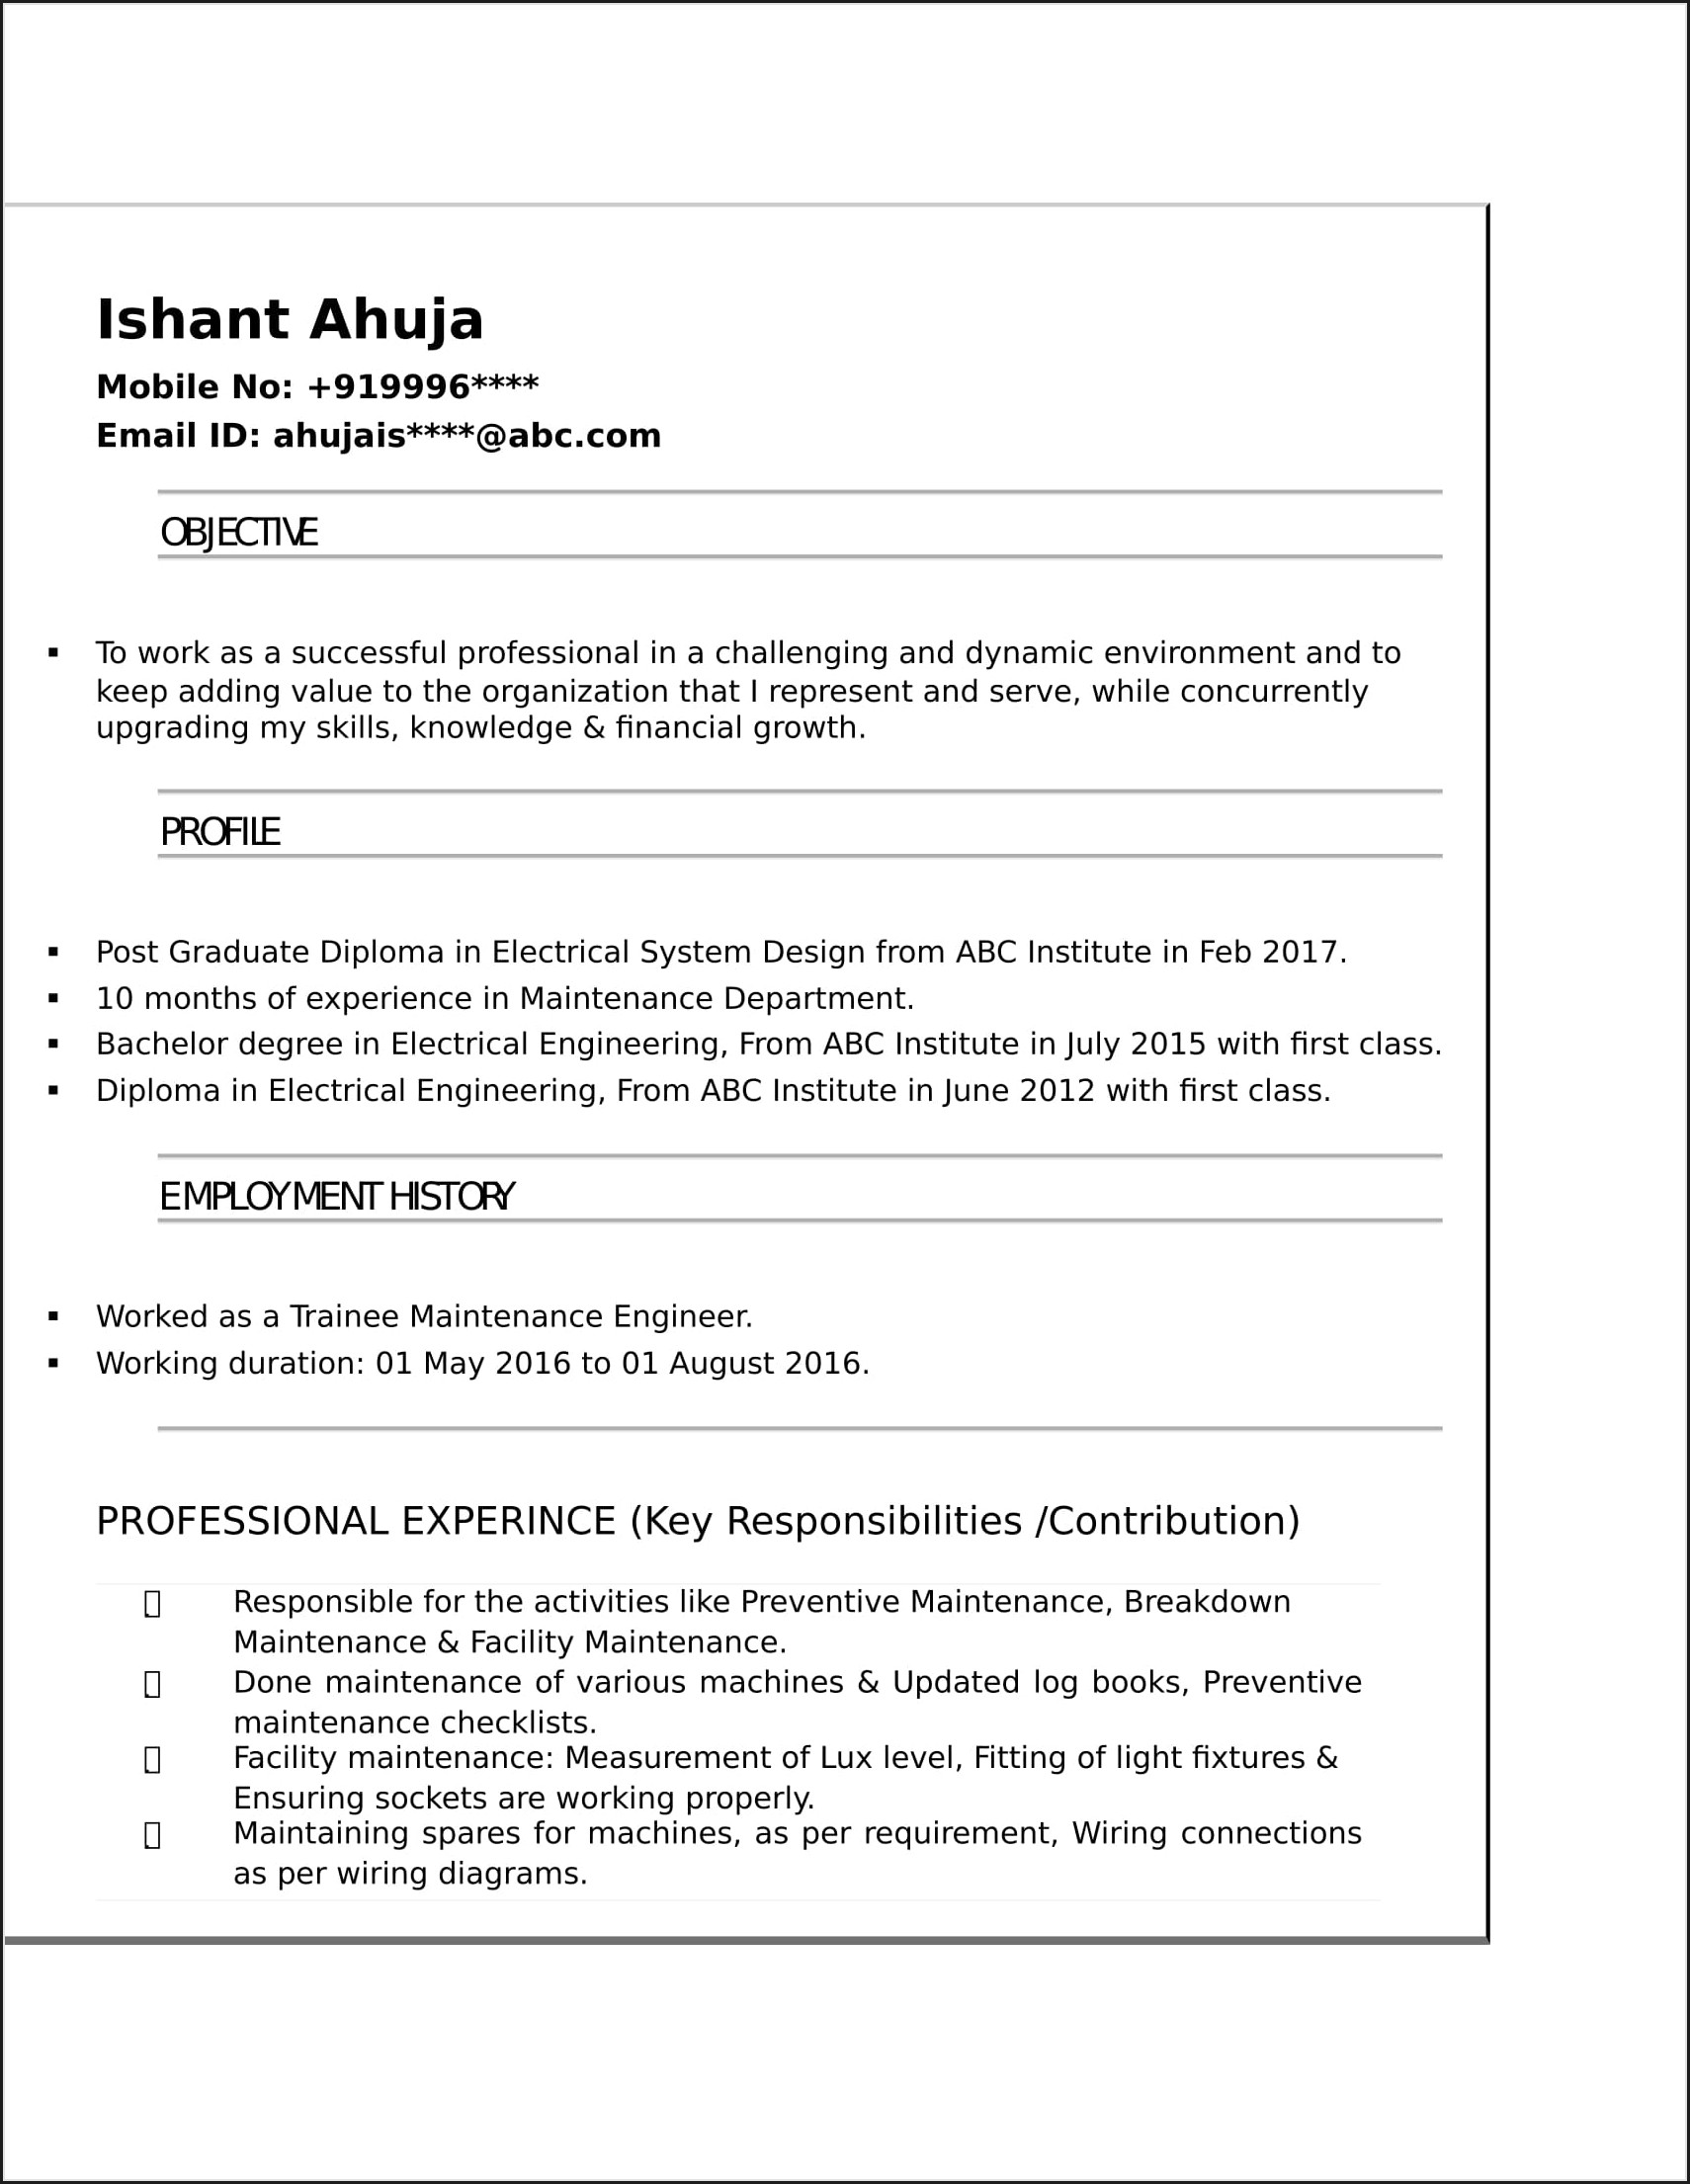 Resume Of Electrical Engineer Fresher Pdf